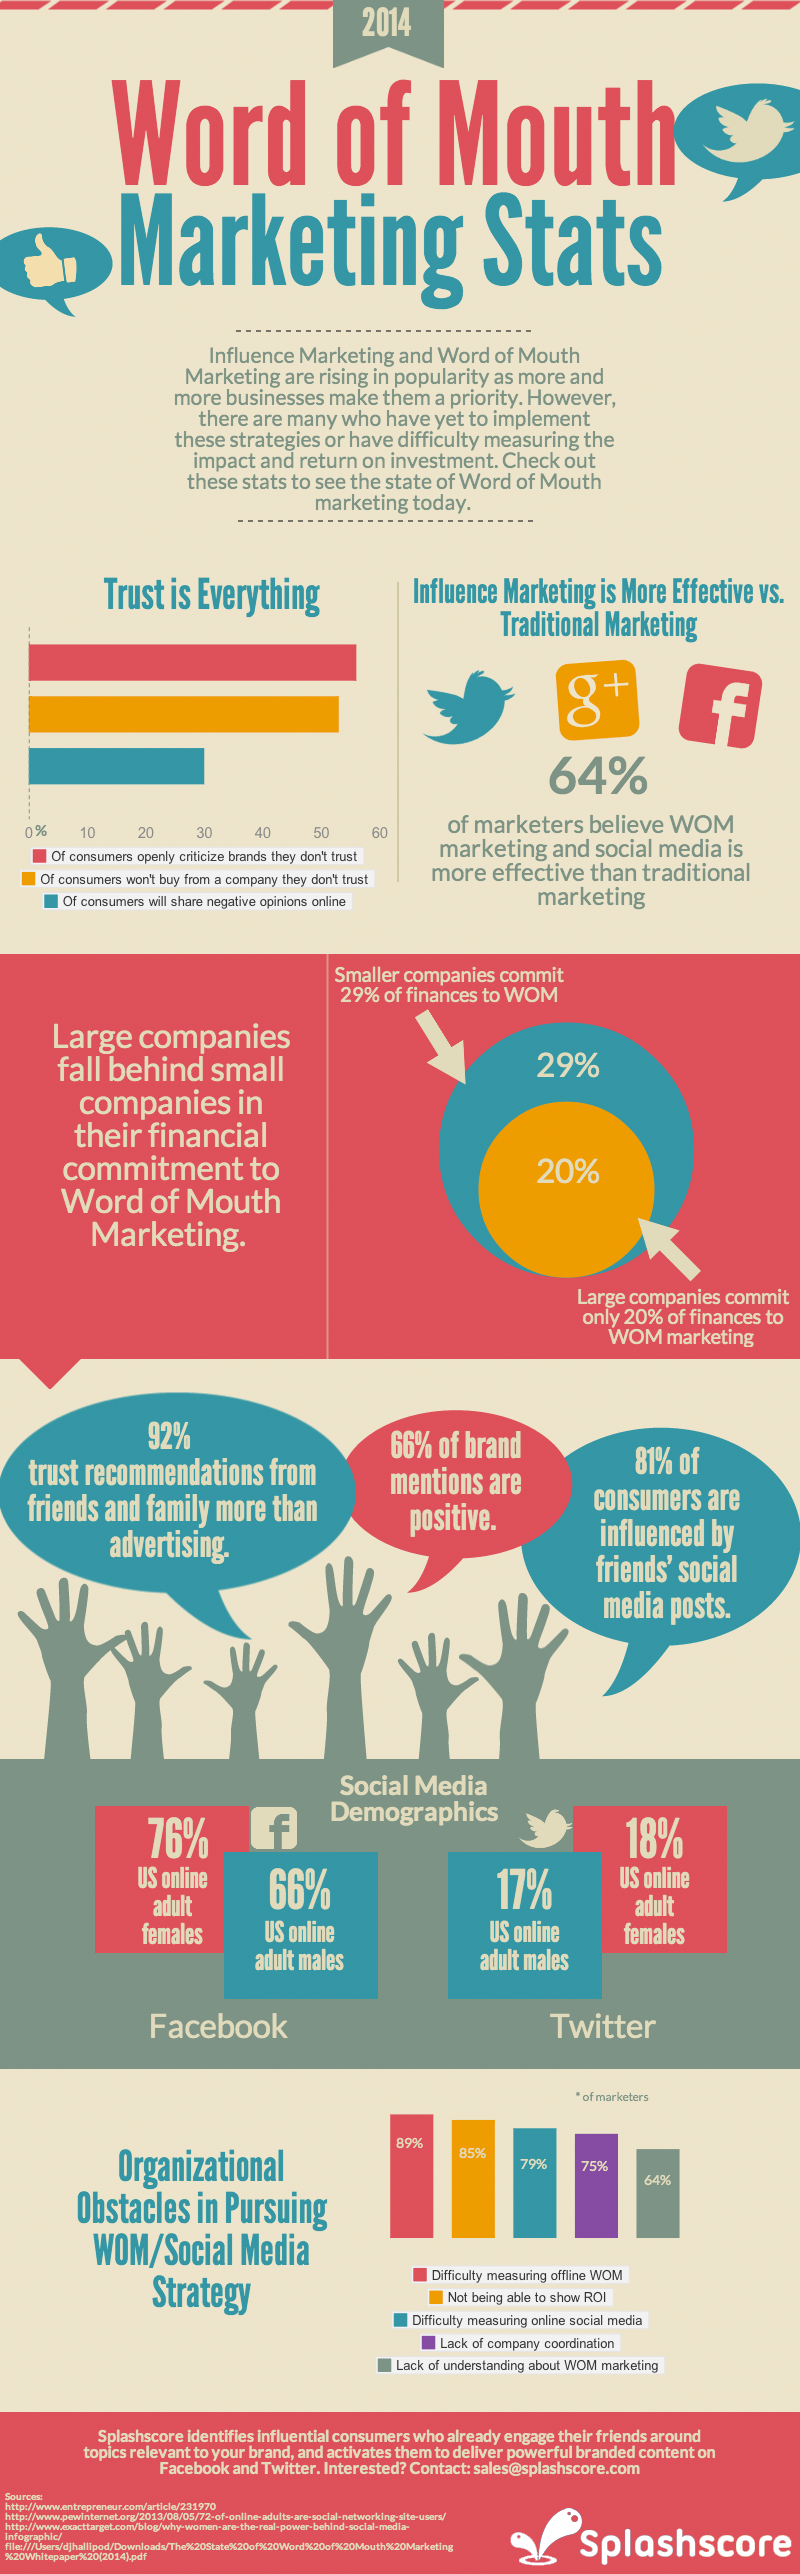 Word-of-Mouth-Marketing-Stats-Infographic